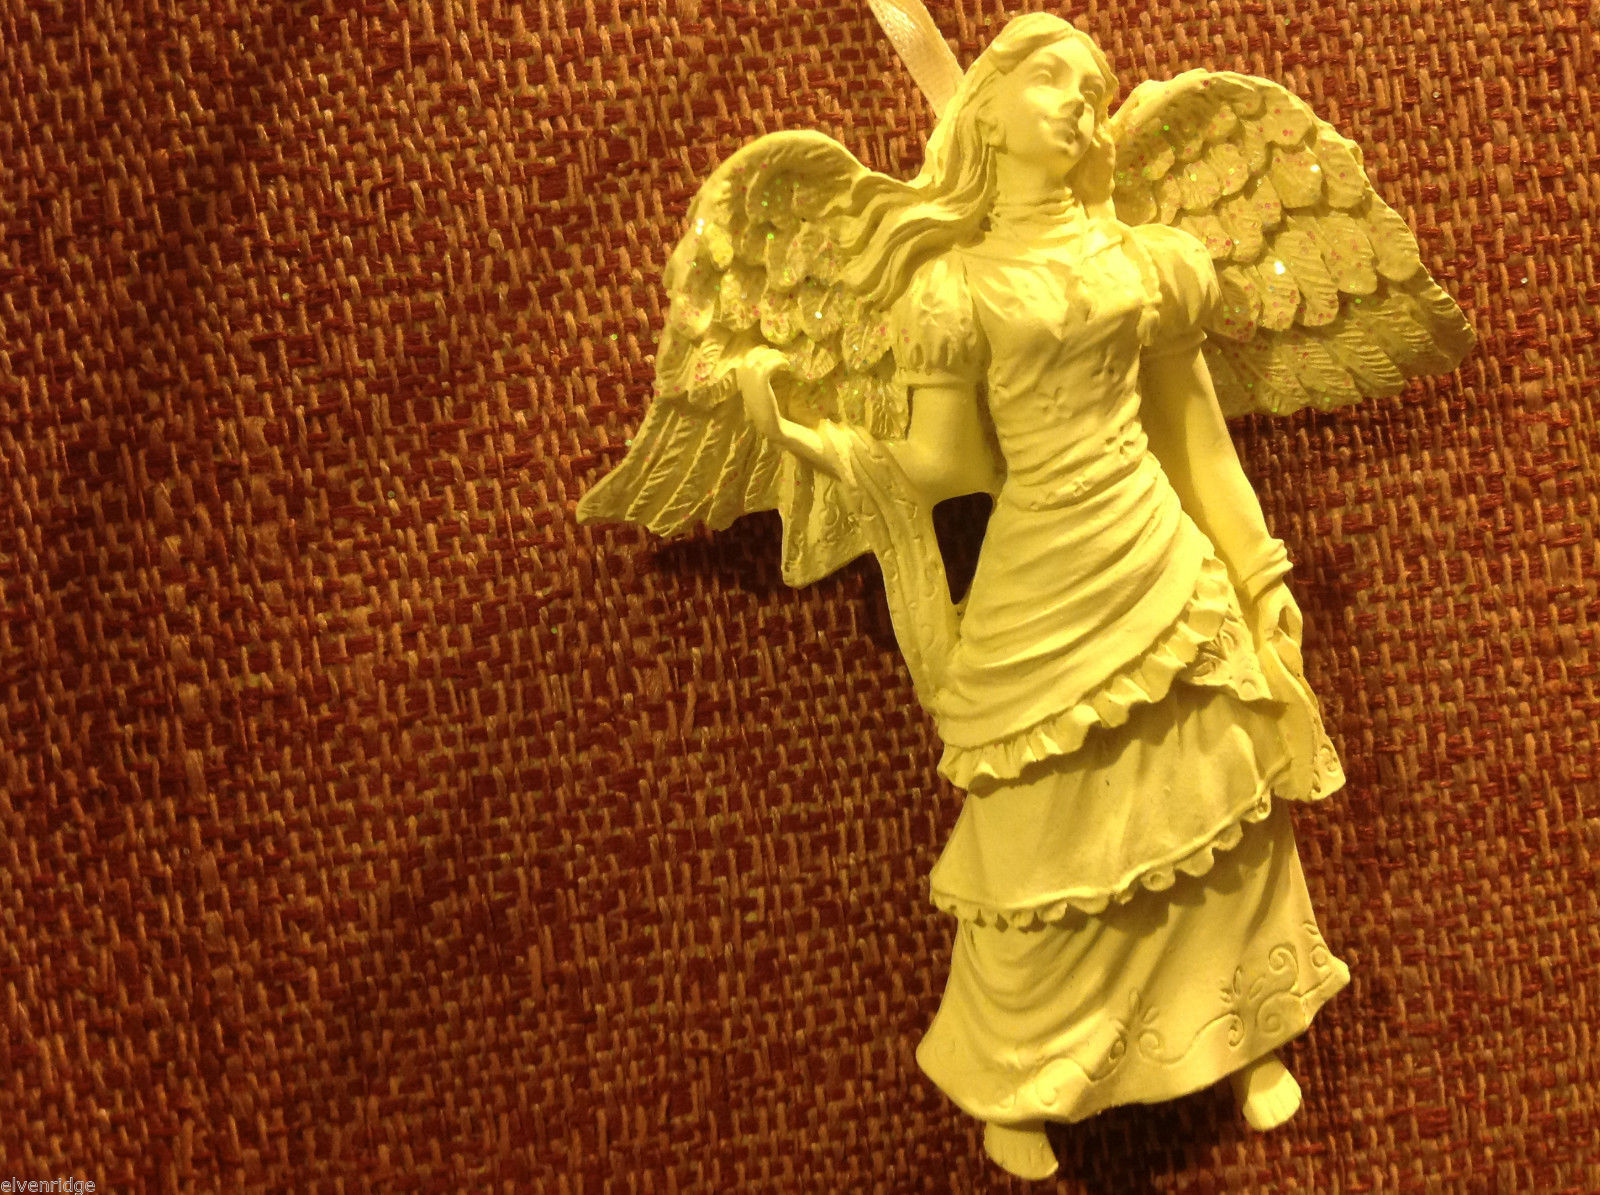 White angel ornament named SIMPLICITY  in organza gift bag new with tags